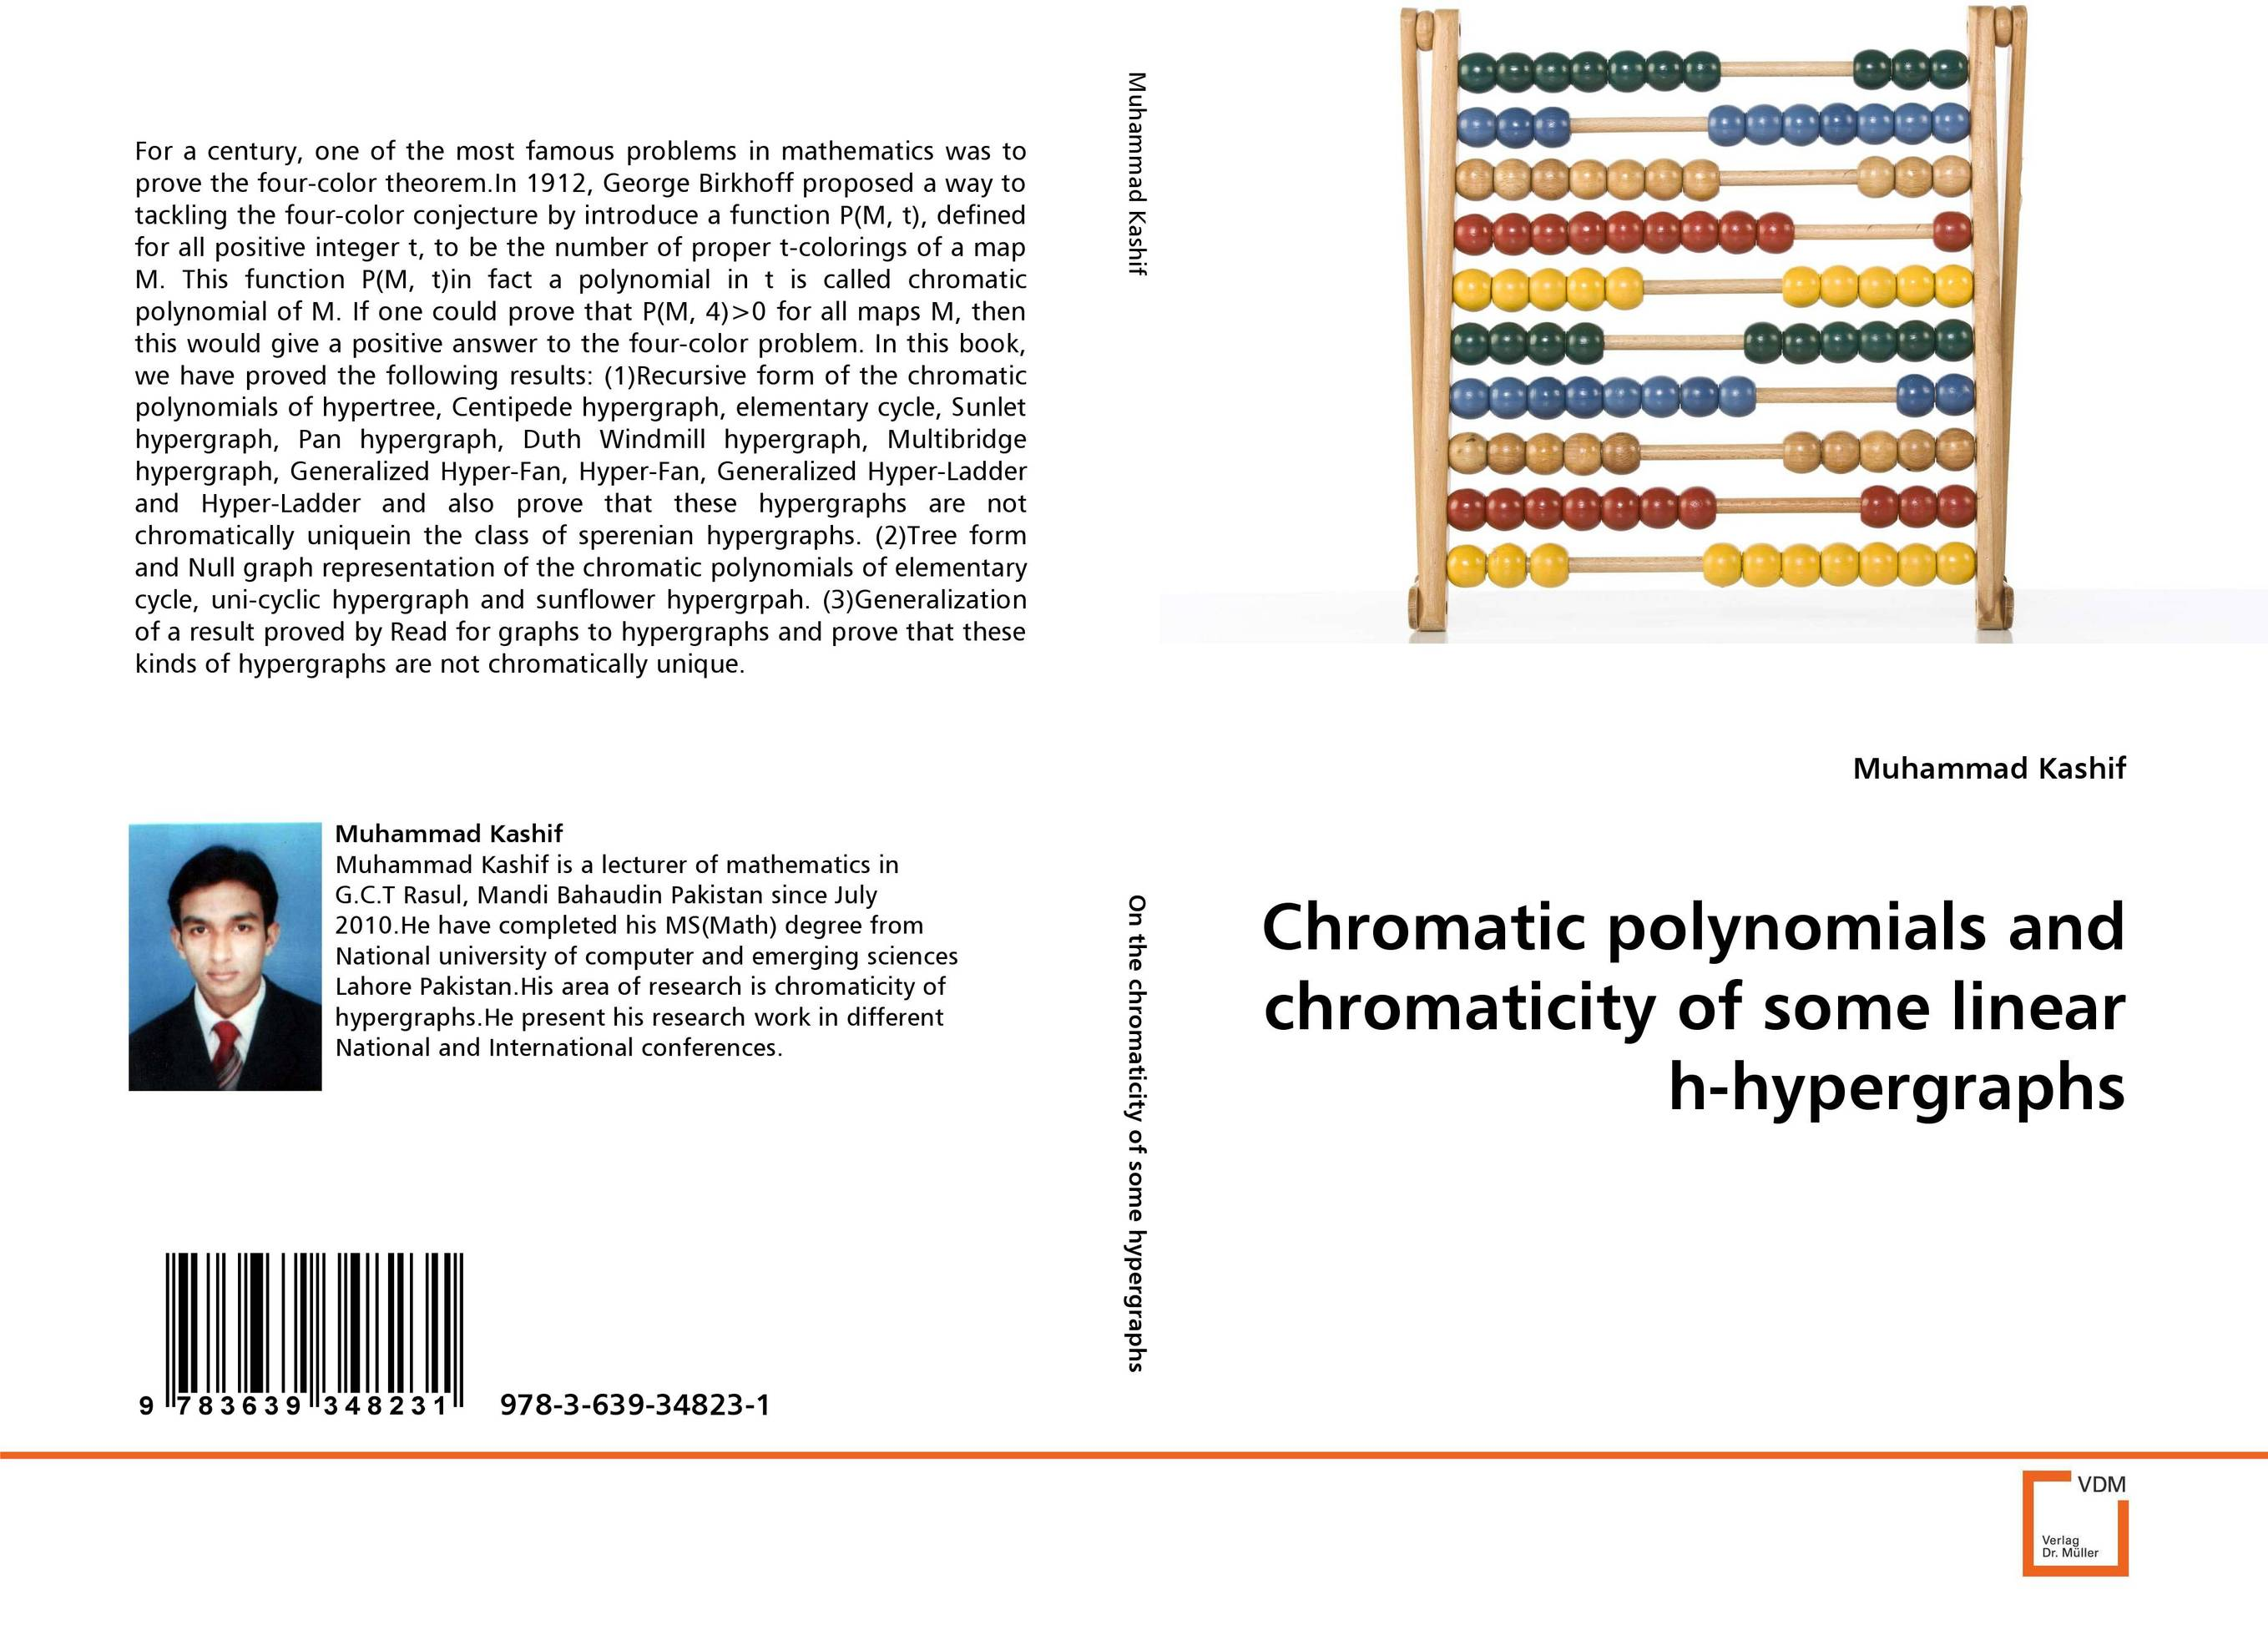 Chromatic polynomials and chromaticity of some linear h-hypergraphs reilly m the four legendary kingdoms